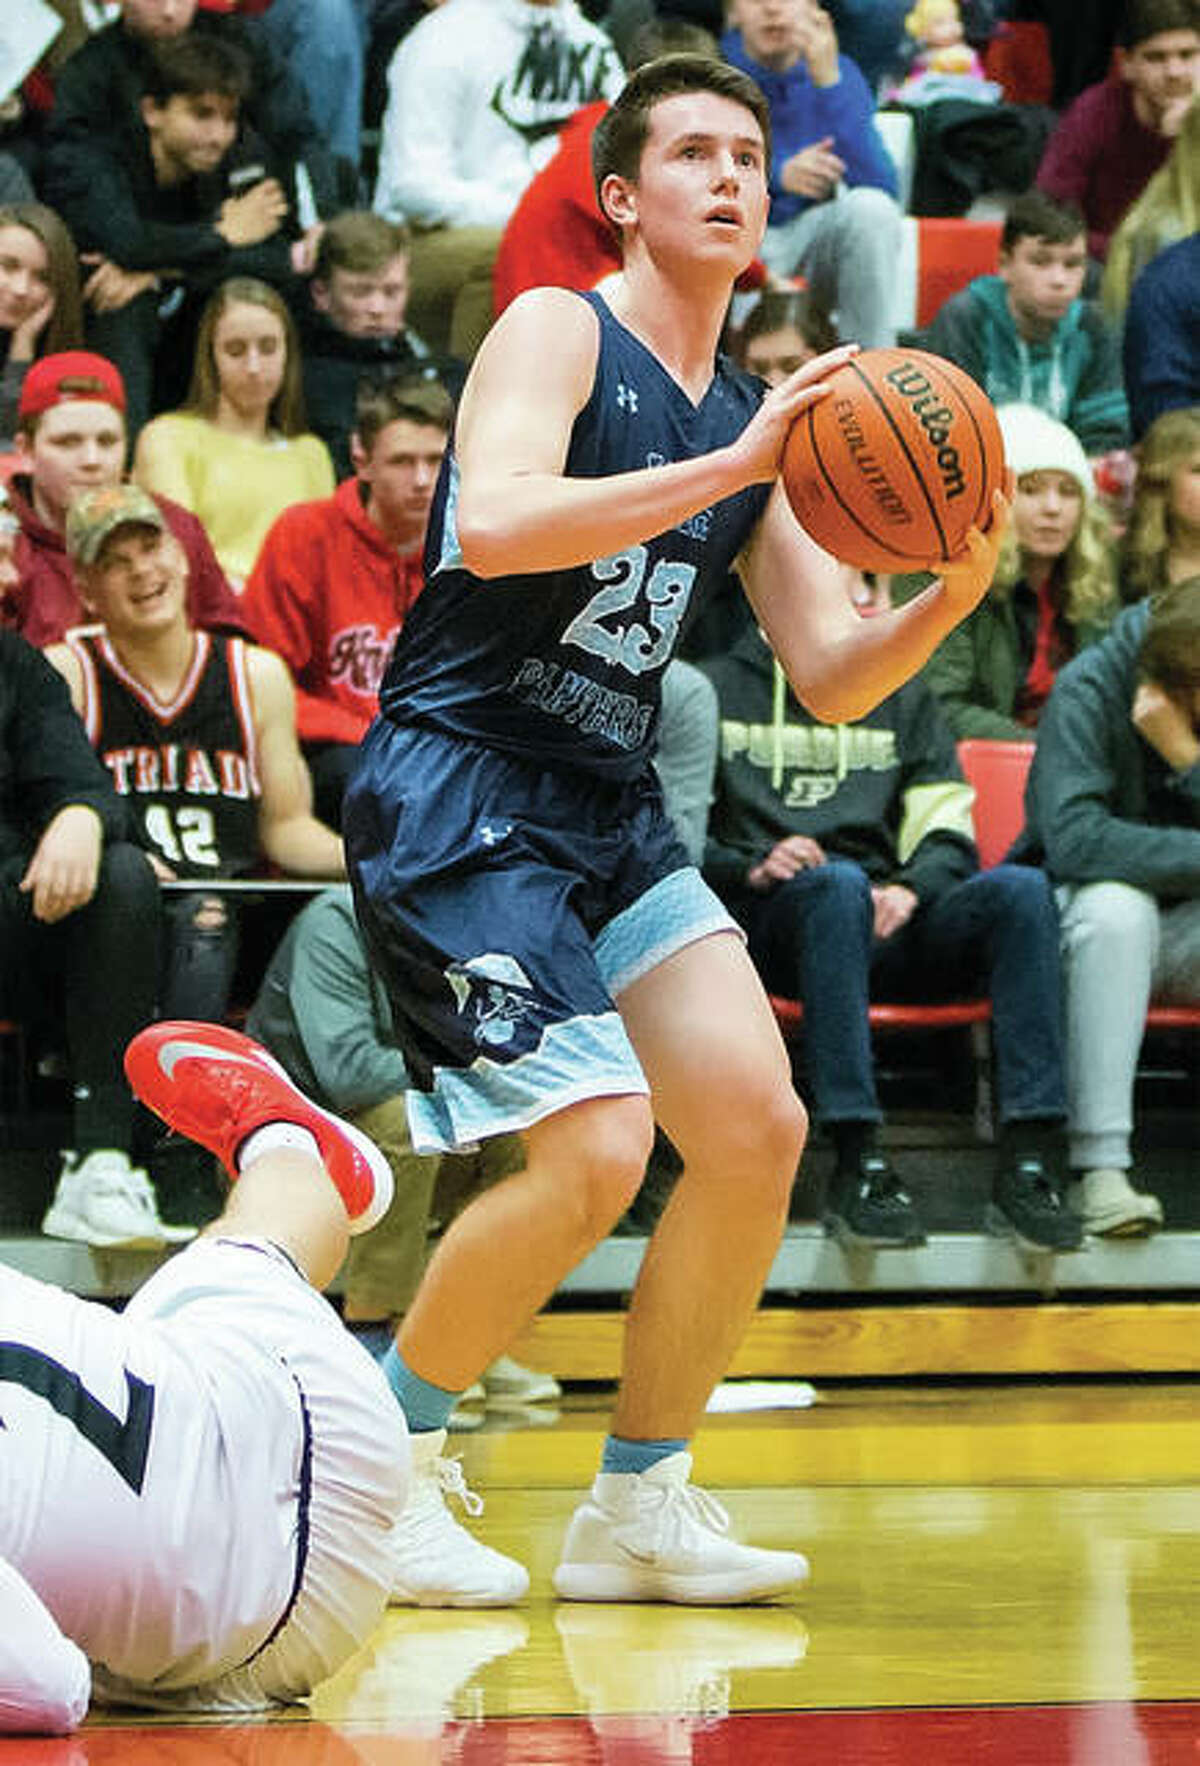 Jersey's Cody Gibson looks to the basket after a Triad defender falls to the floor during a Panthers win Jan. 5 in Troy. The Panthers were back home Tuesday night at Havens Gym in Jerseyville and fell to Mount Vernon in overtime.